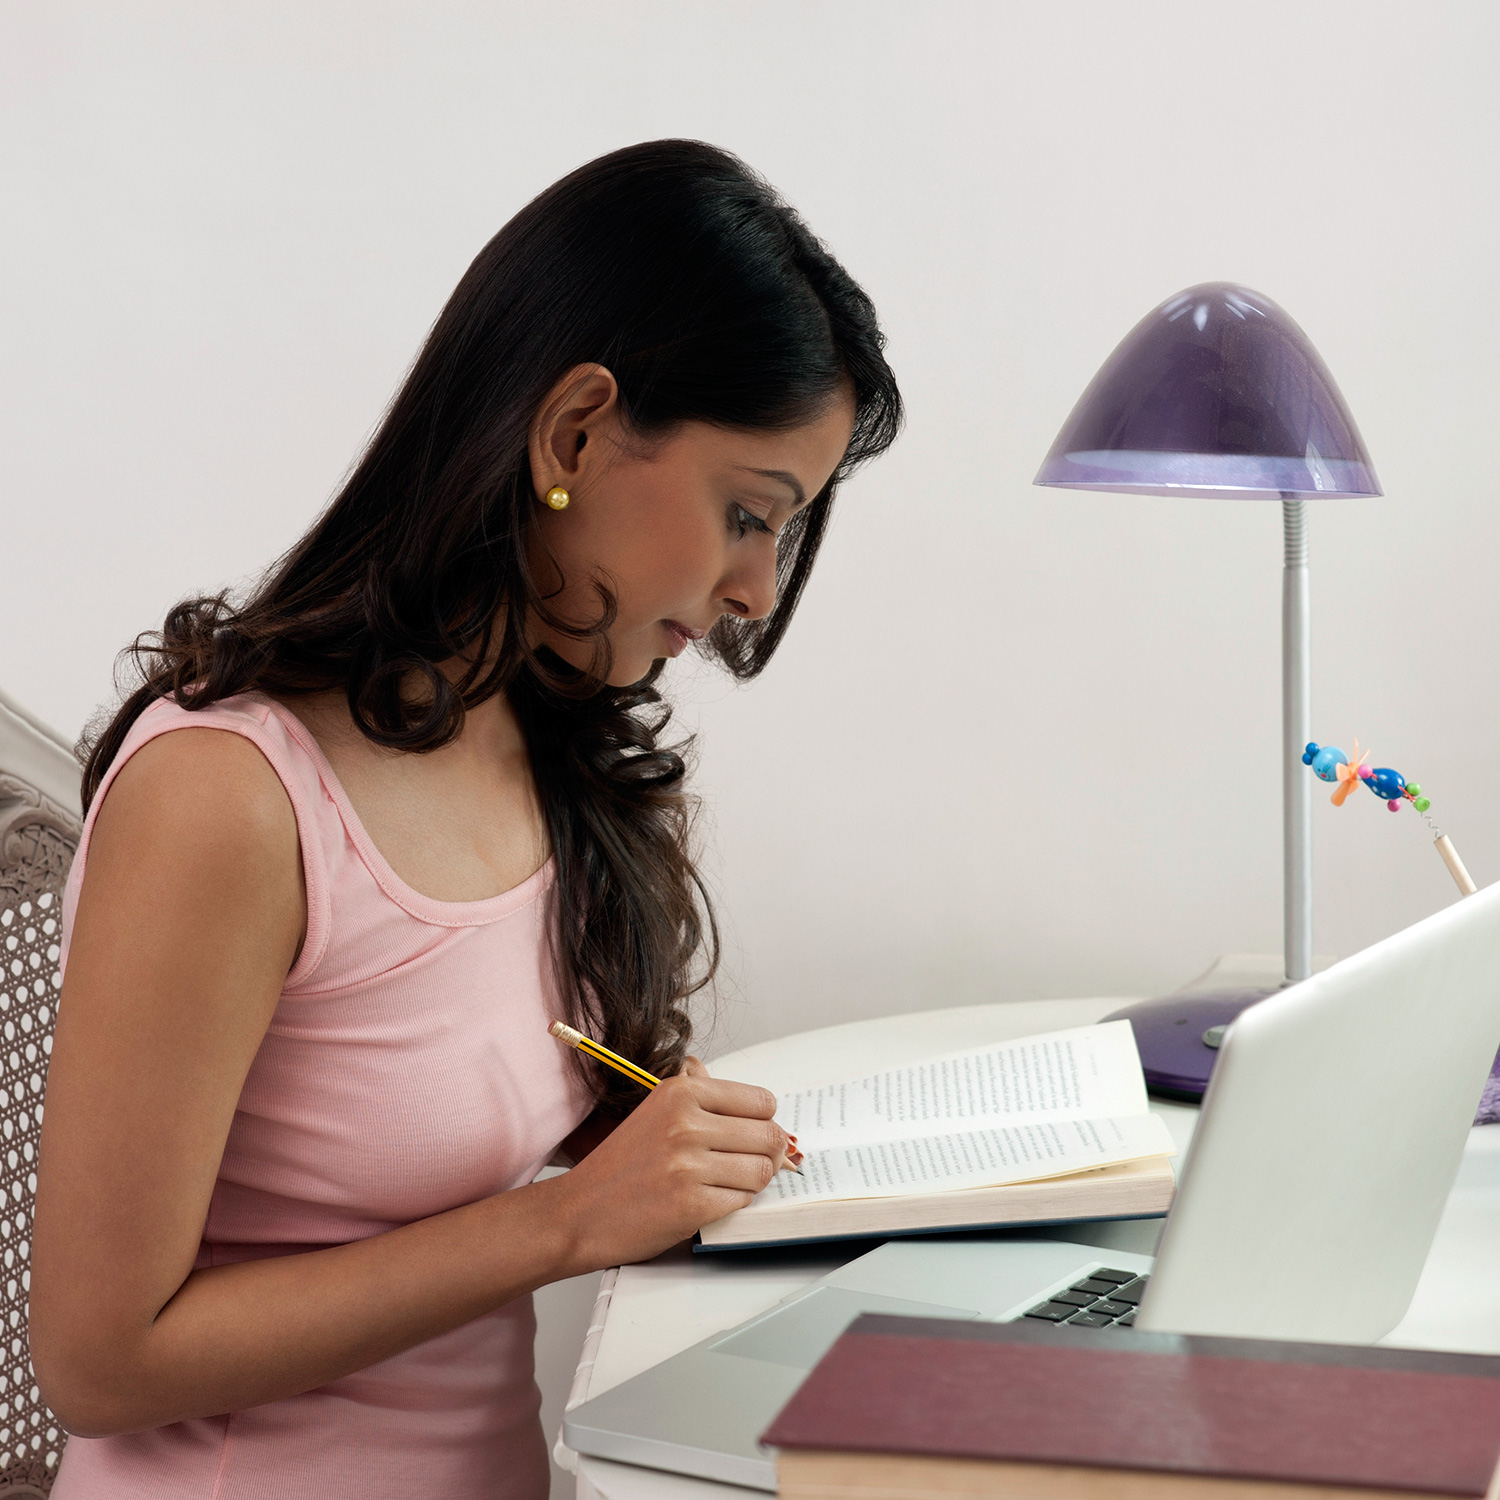 woman-studying-reading-work-computer-book.jpg